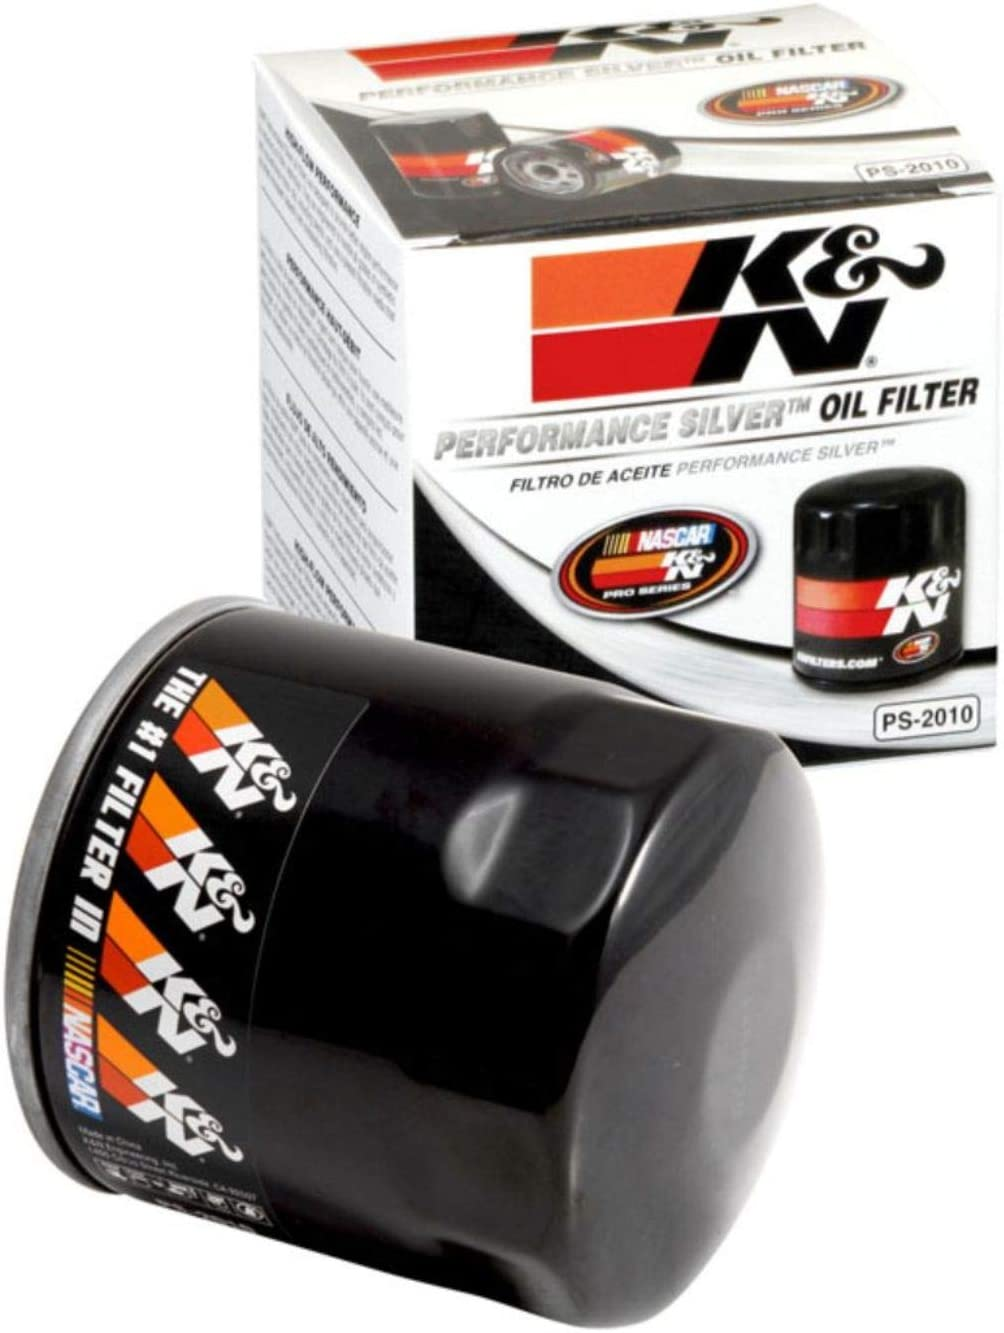 K&N Premium Oil Filter: Designed to Protect your Engine: Fits Select CHEVROLET/DODGE/FORD/JEEP Vehicle Models (See Product Description for Full List of Compatible Vehicles), PS-2010